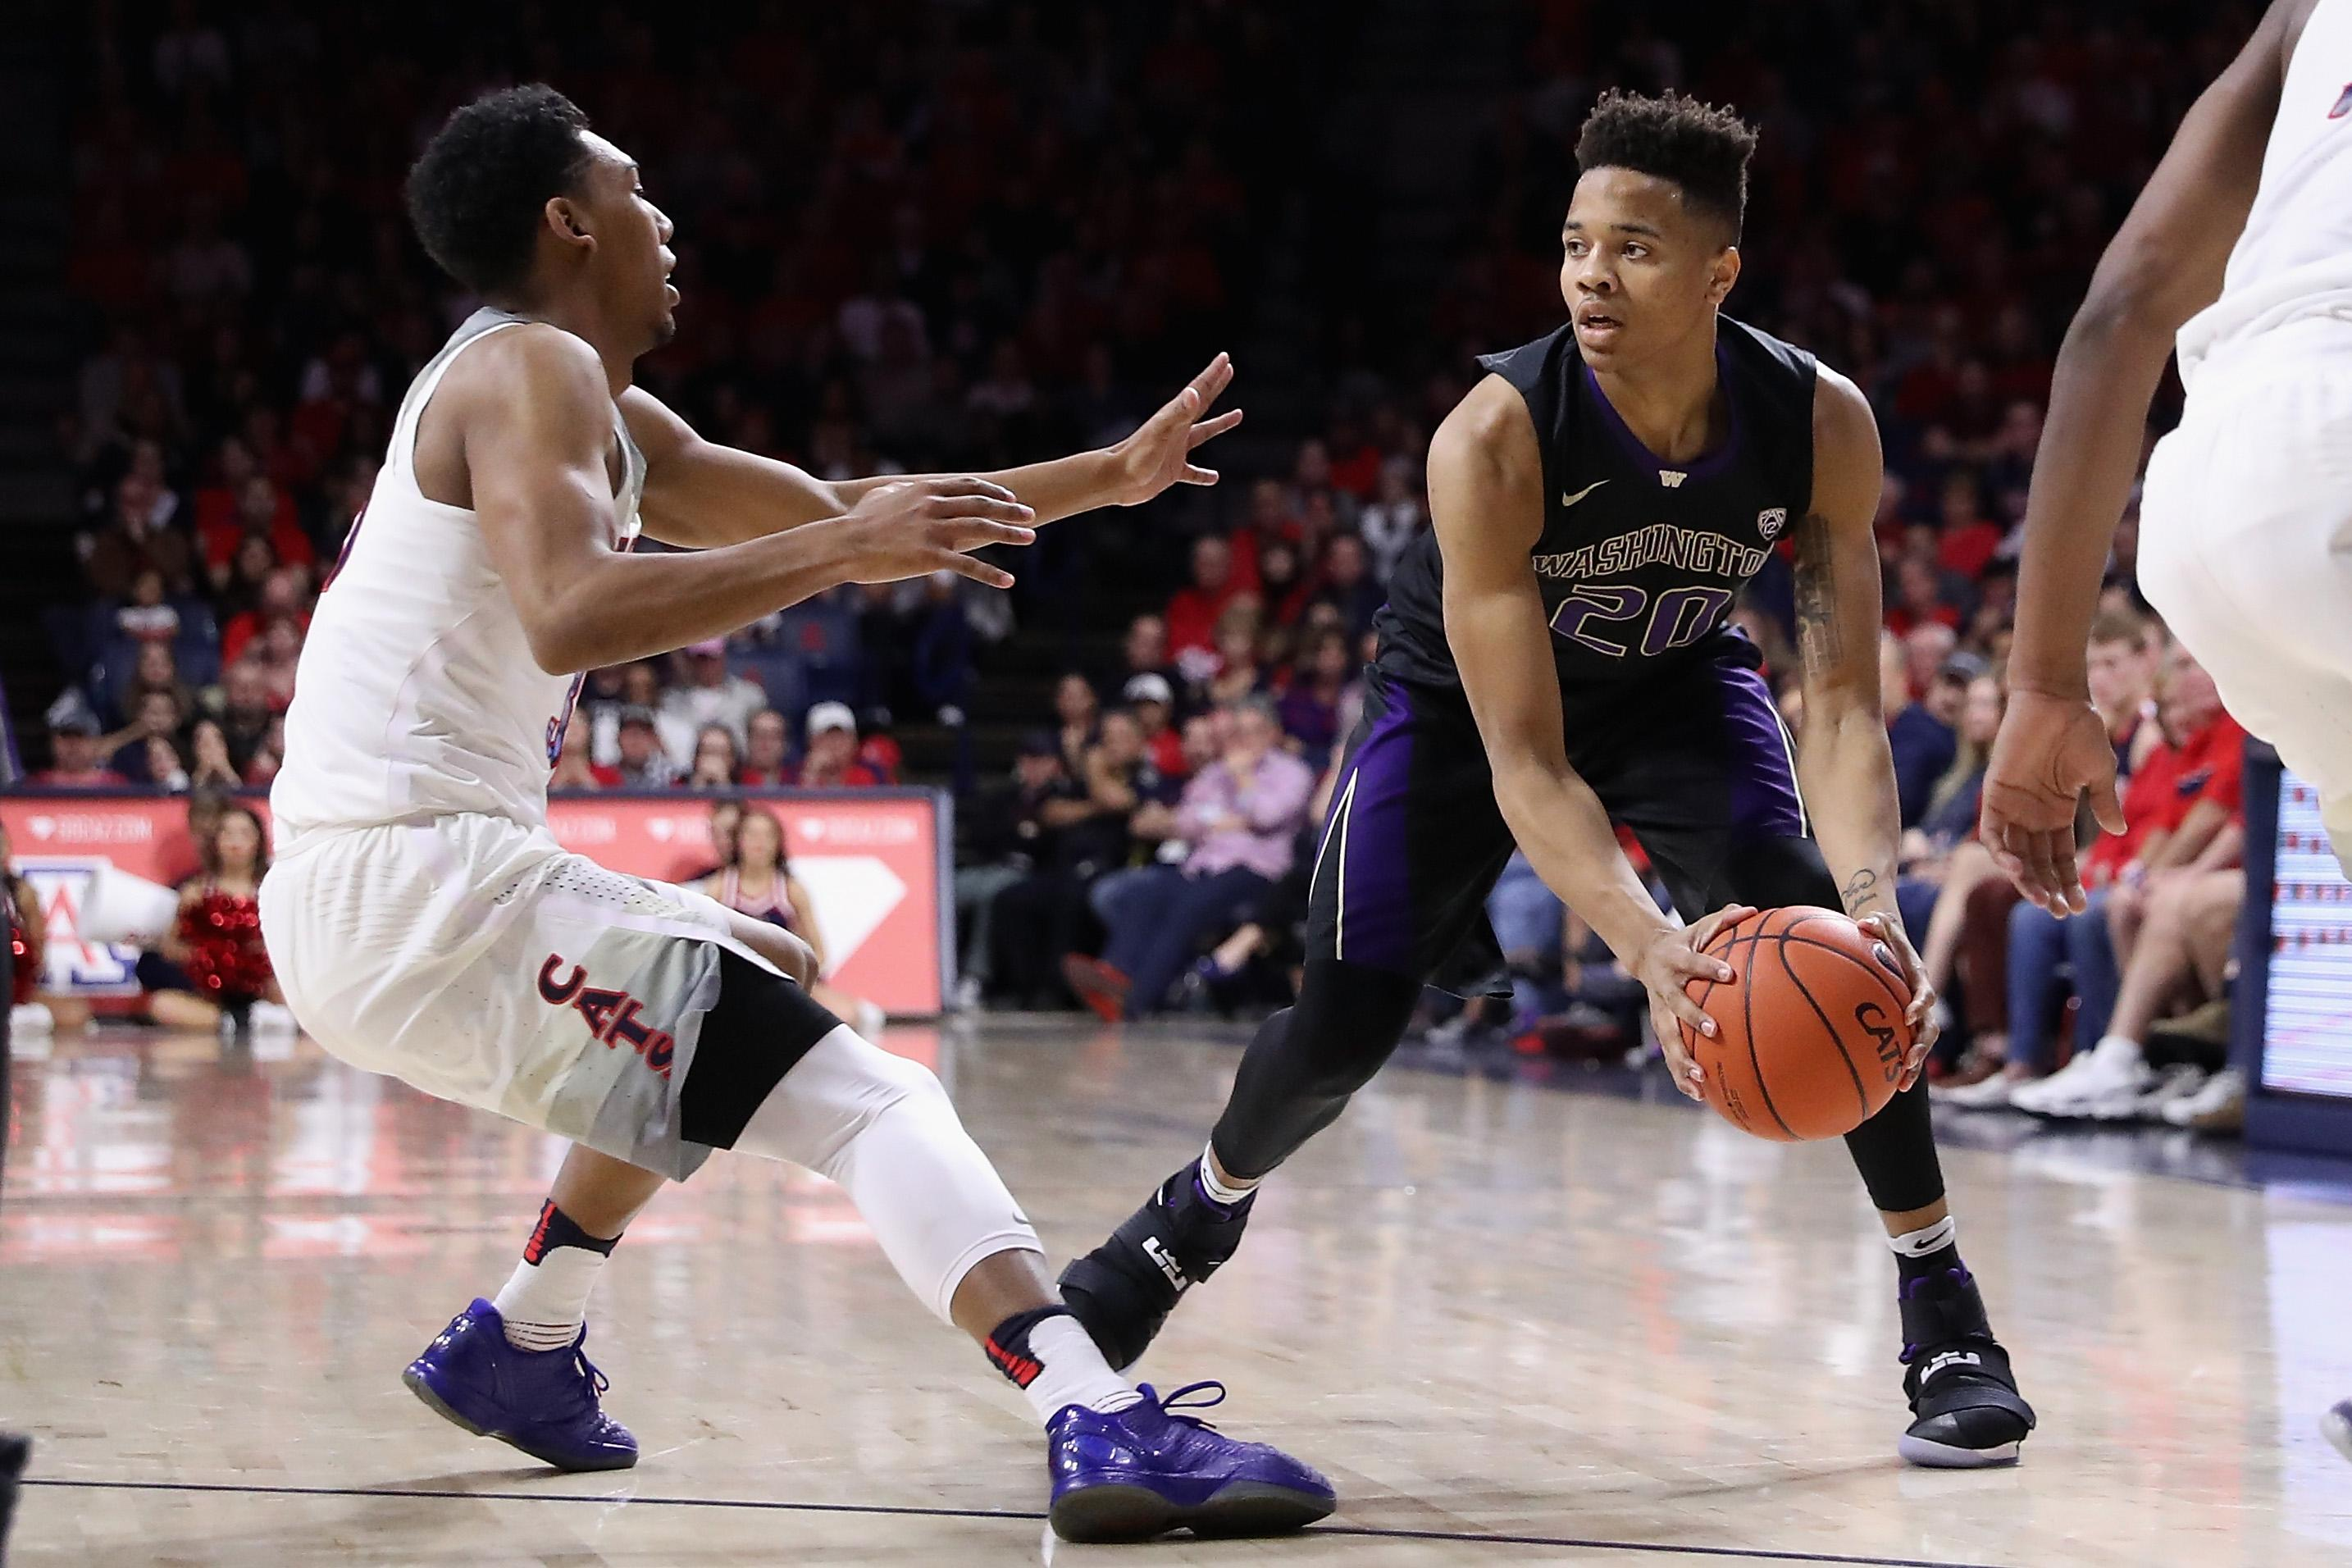 Dennis Smith Jr., Markelle Fultz Among Players Listed In NCAA Probe